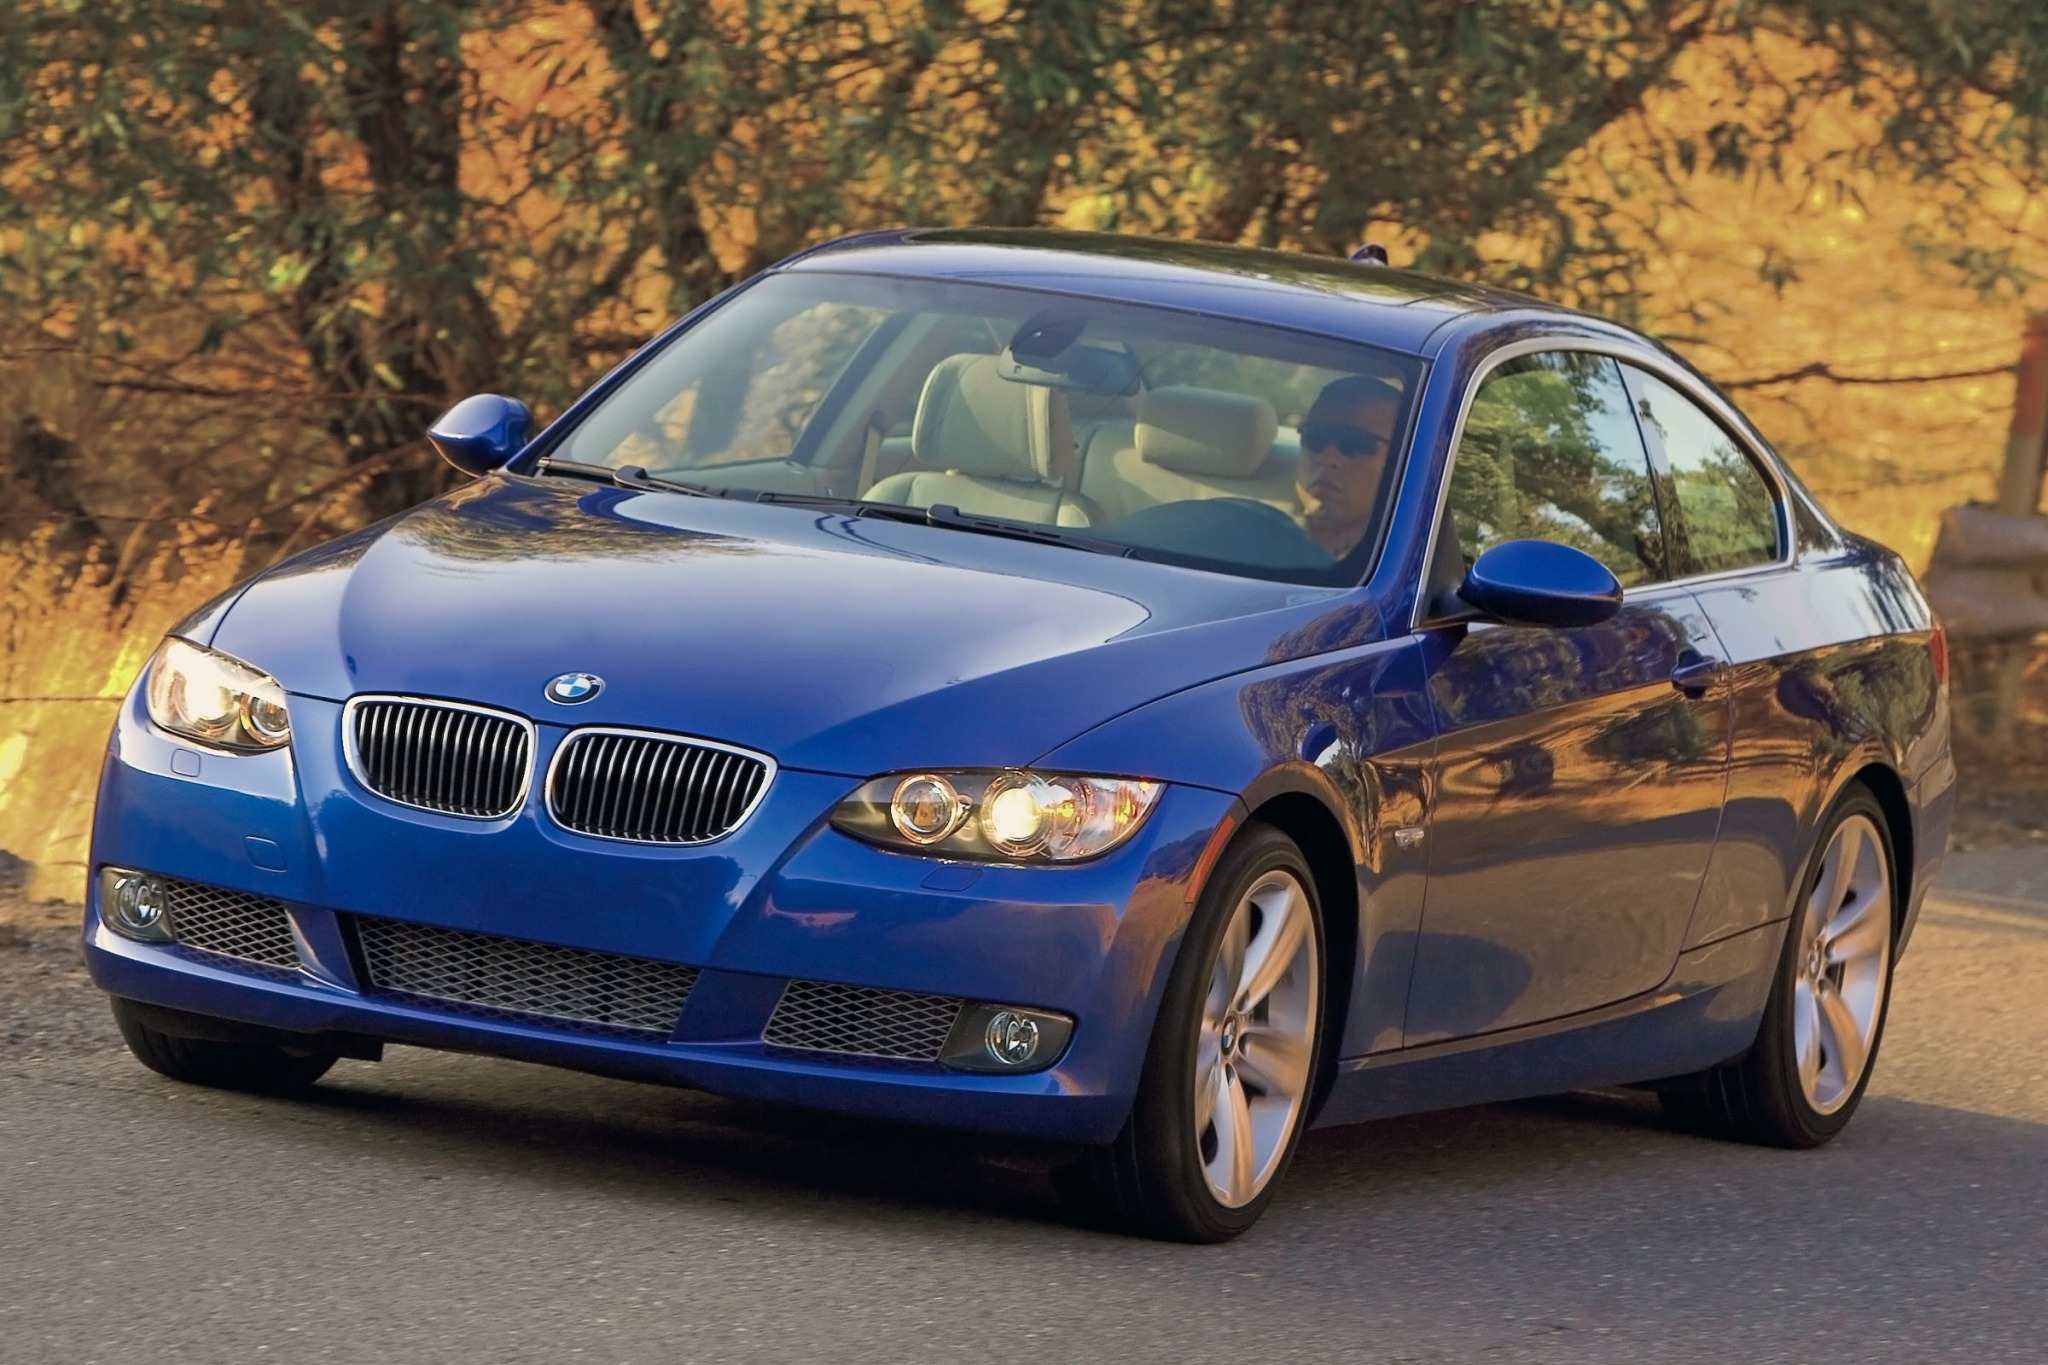 2007 bmw 3 series - information and photos - zombiedrive